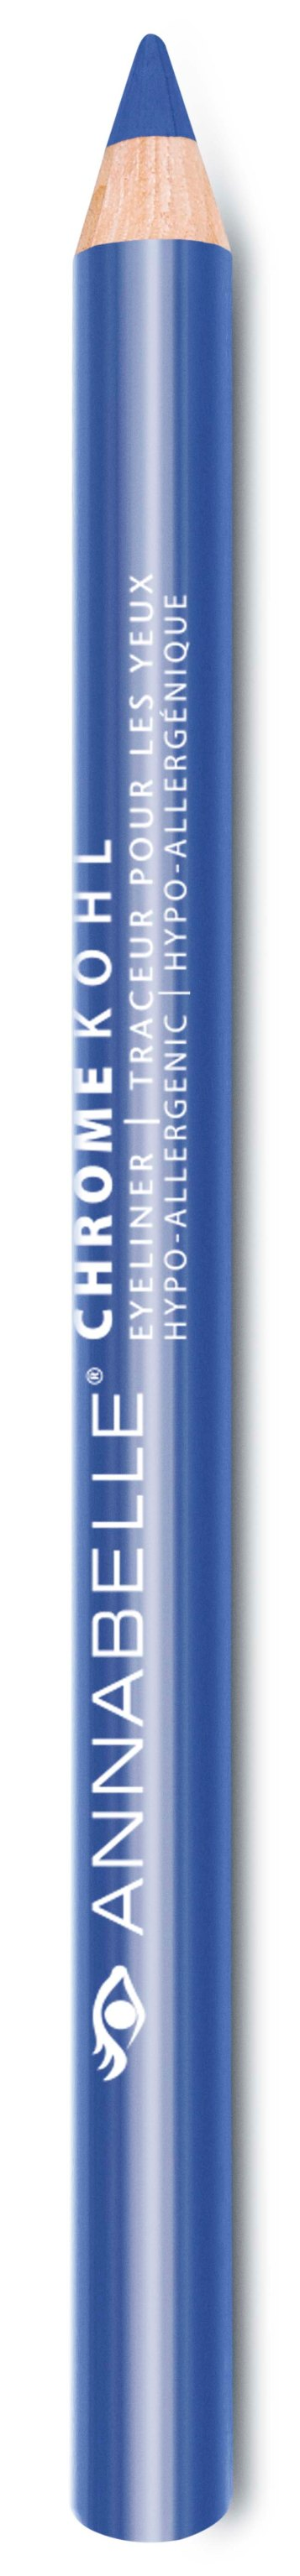 CHROME KOHL - Blue